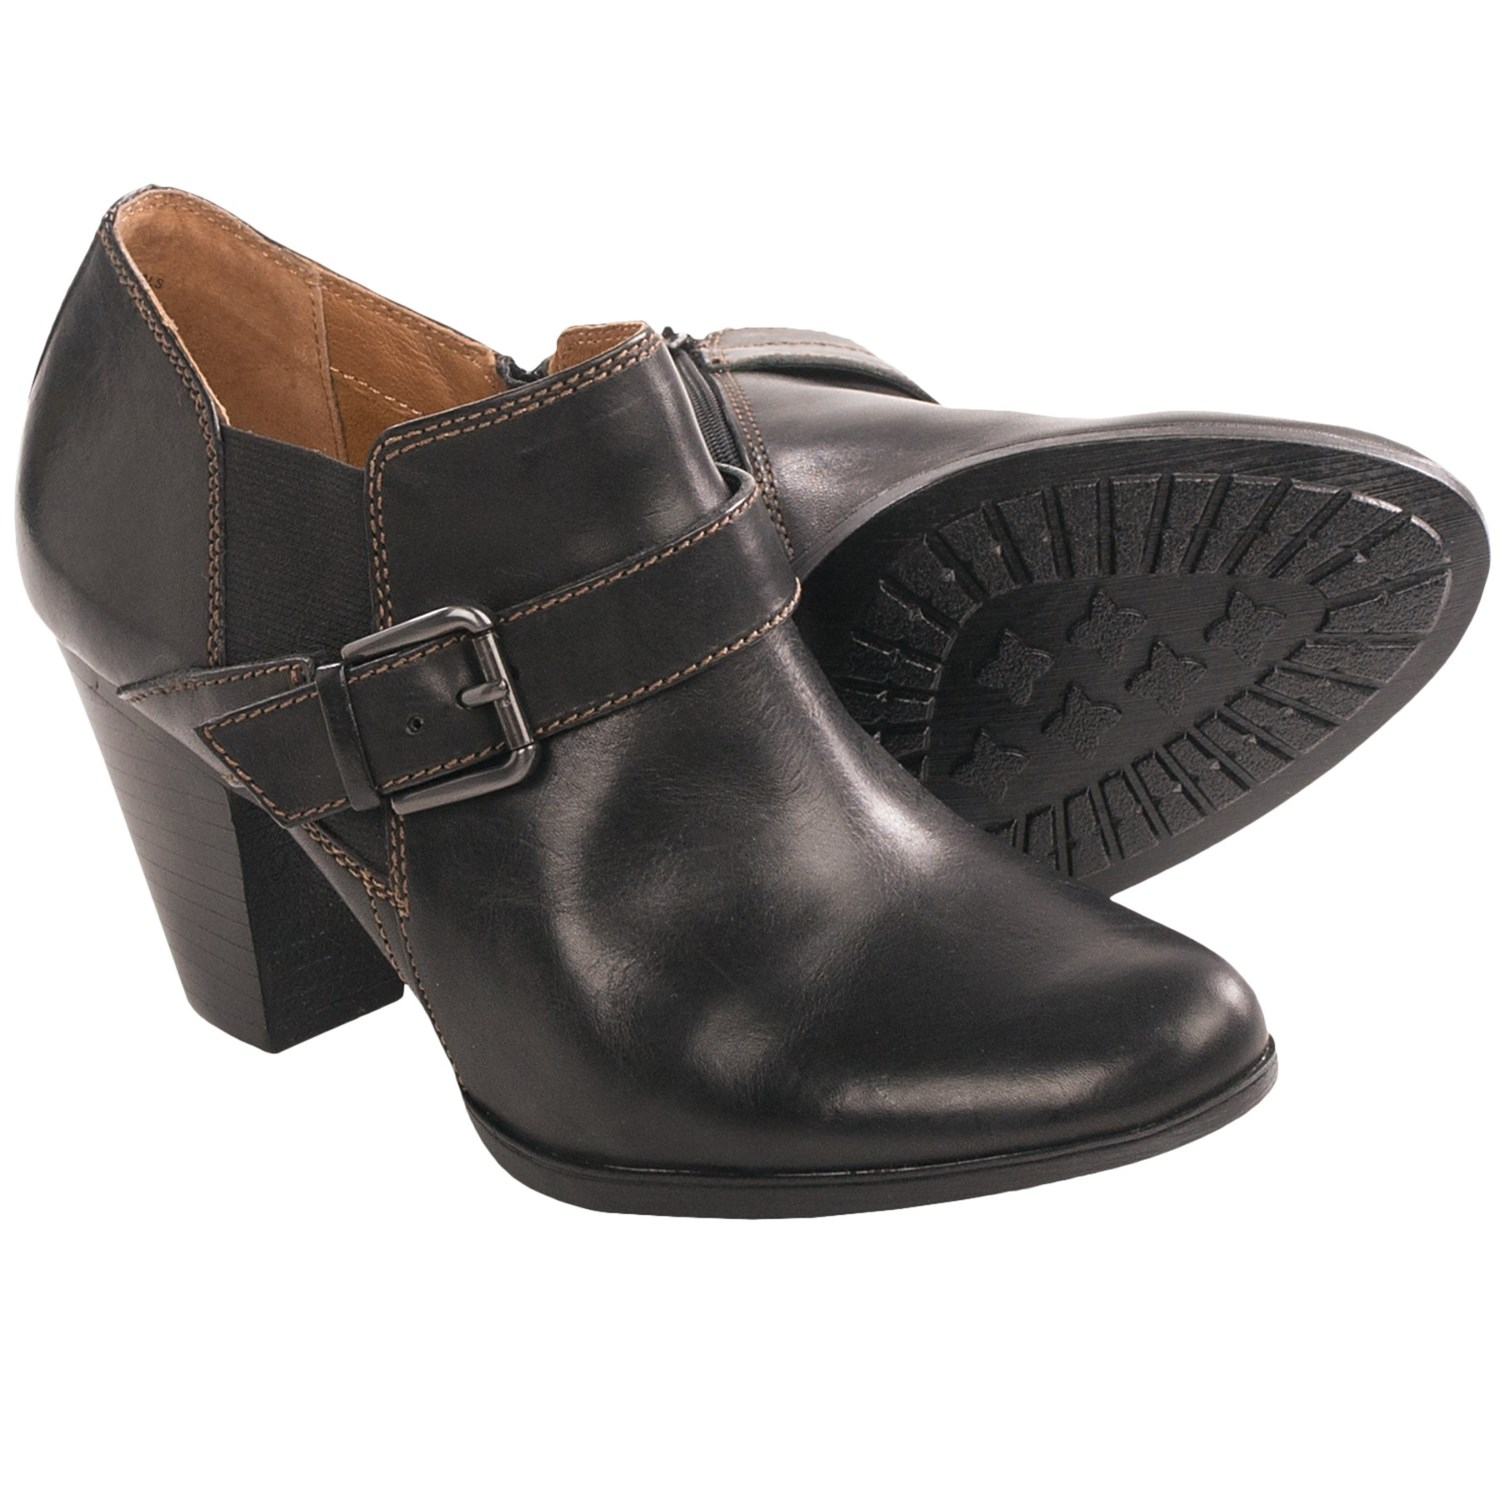 Sofft Nell Ankle Boots - Leather (For Women) in Black